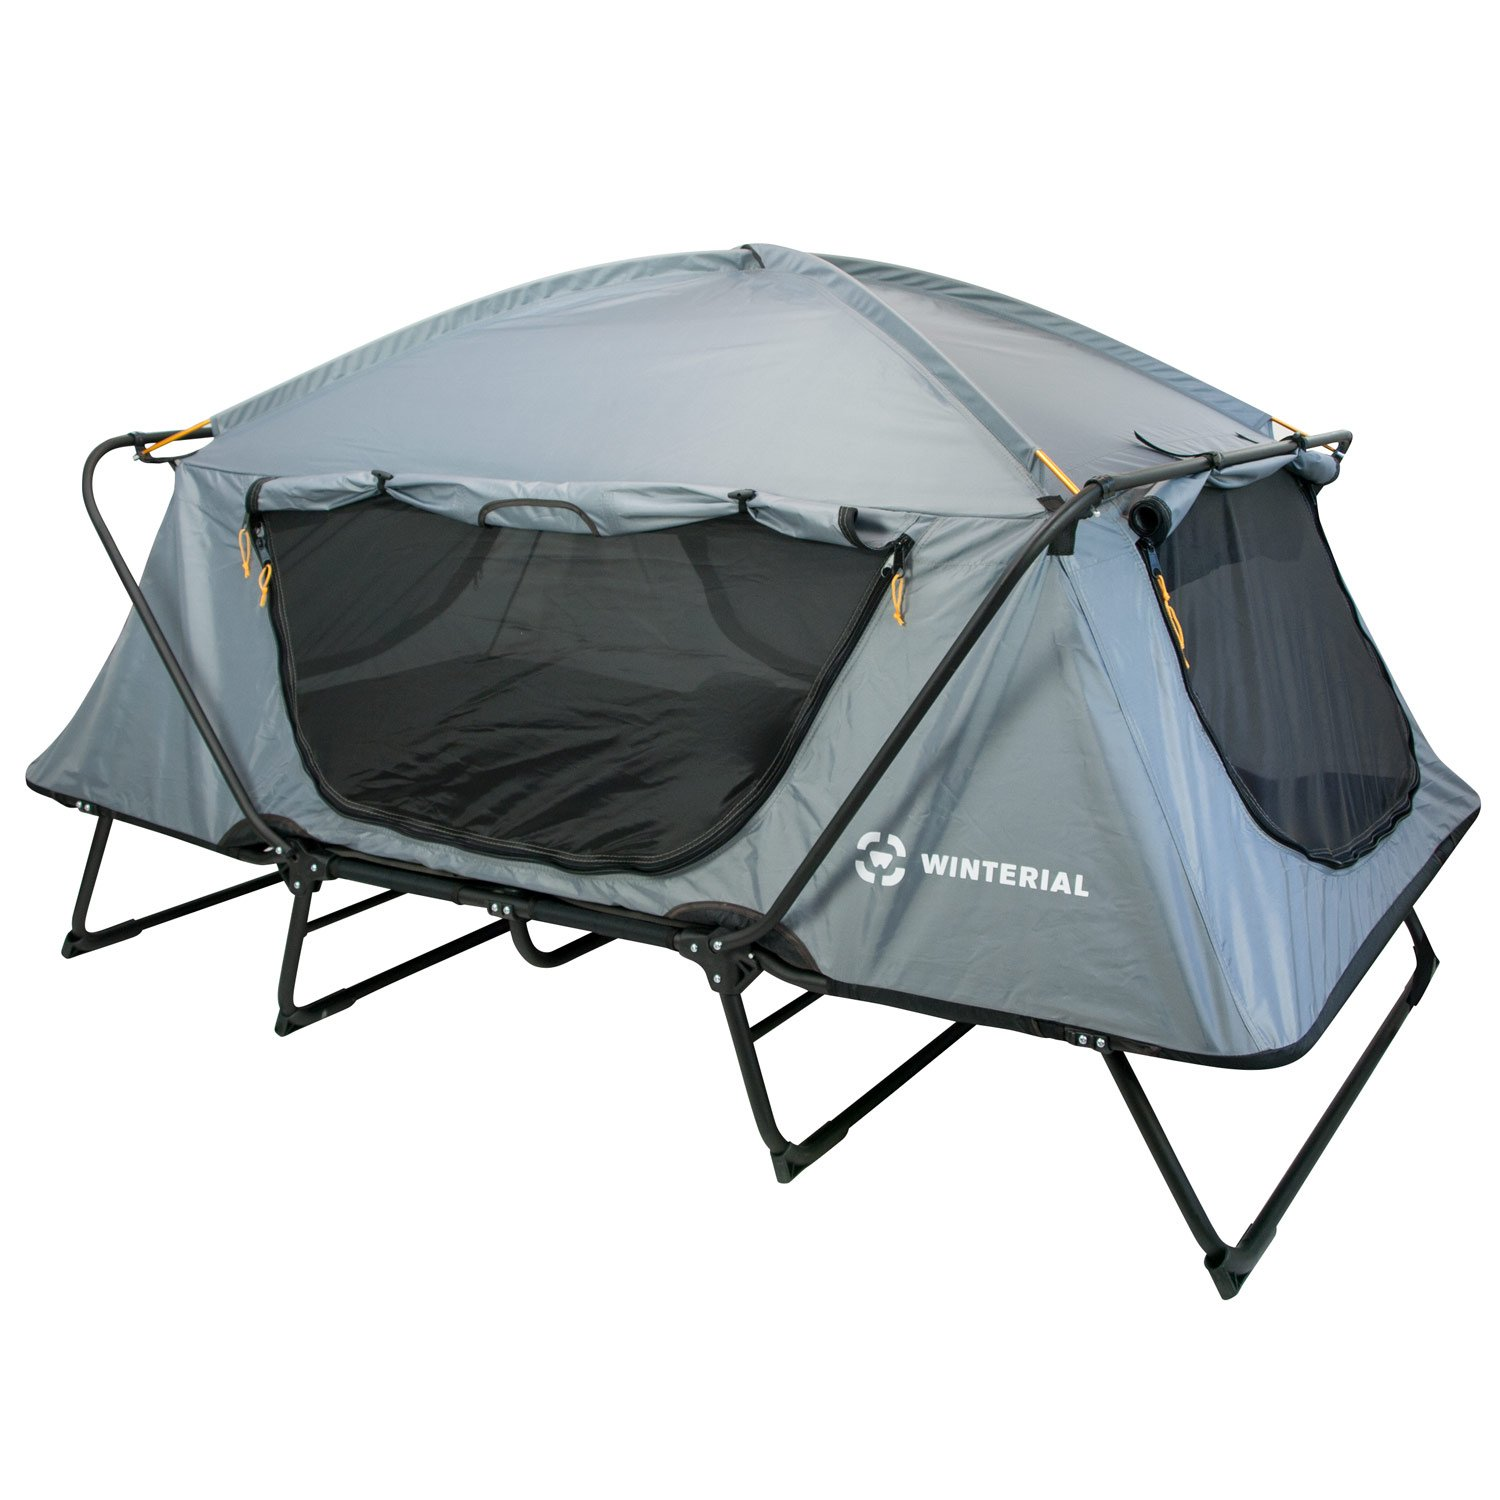 Winterial Double Outdoor Tent Cot/Camping/Family Camping/Adventure/Elevated sleeping platform/Ultimate camping experience